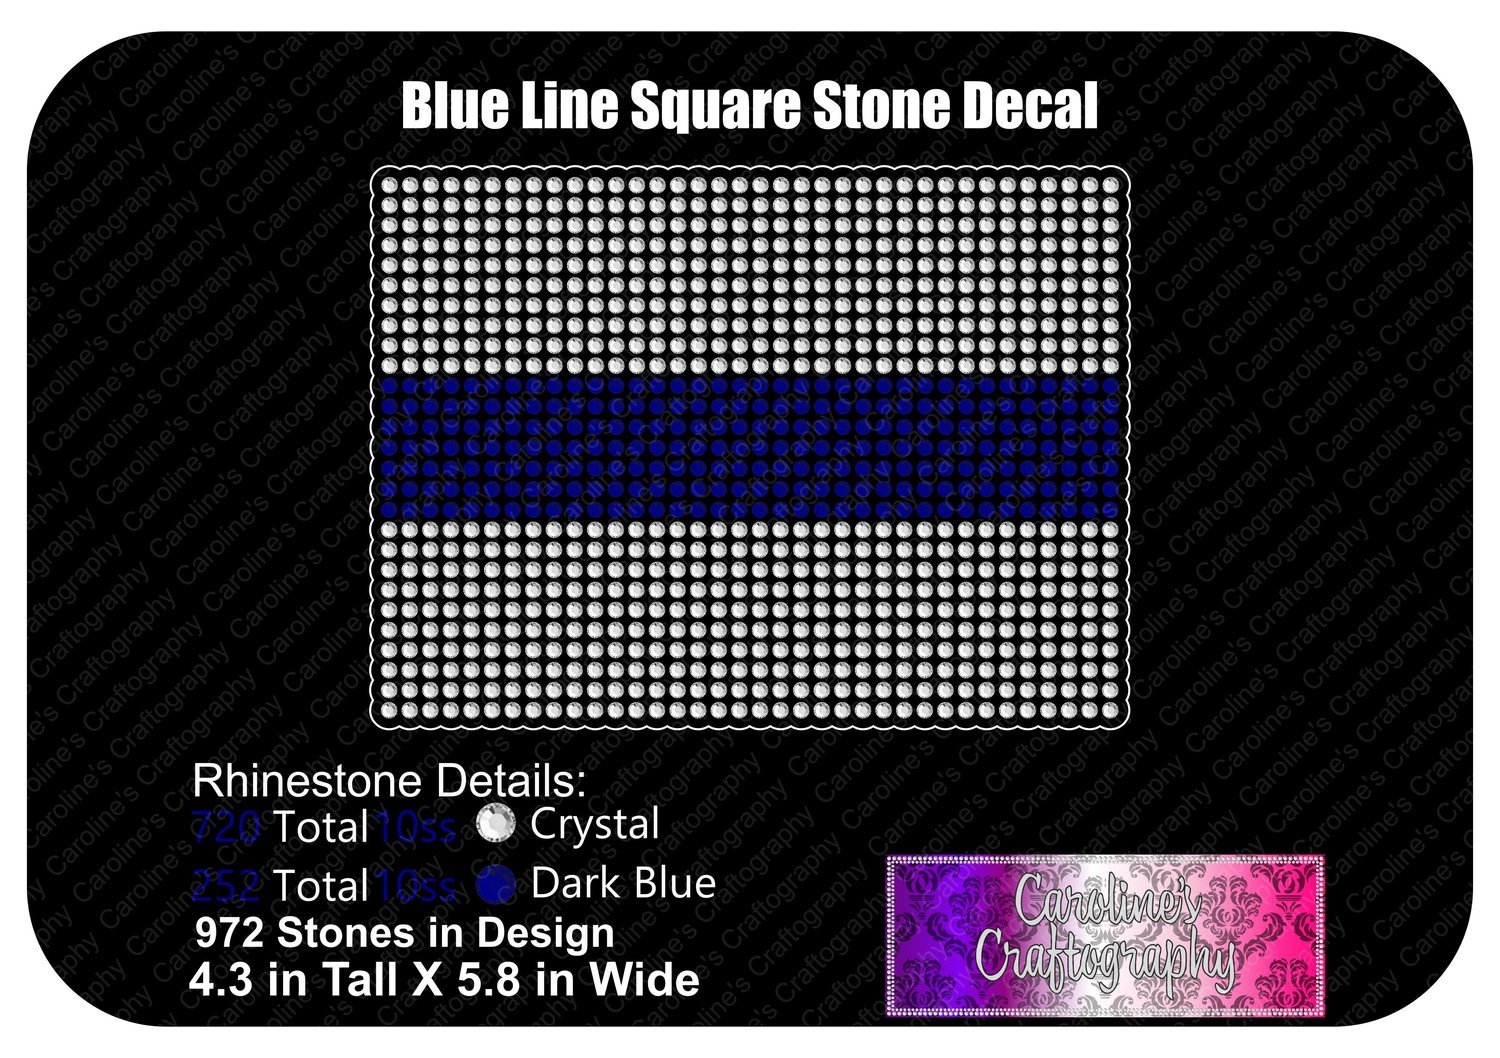 Blue Line Square Stone Decal